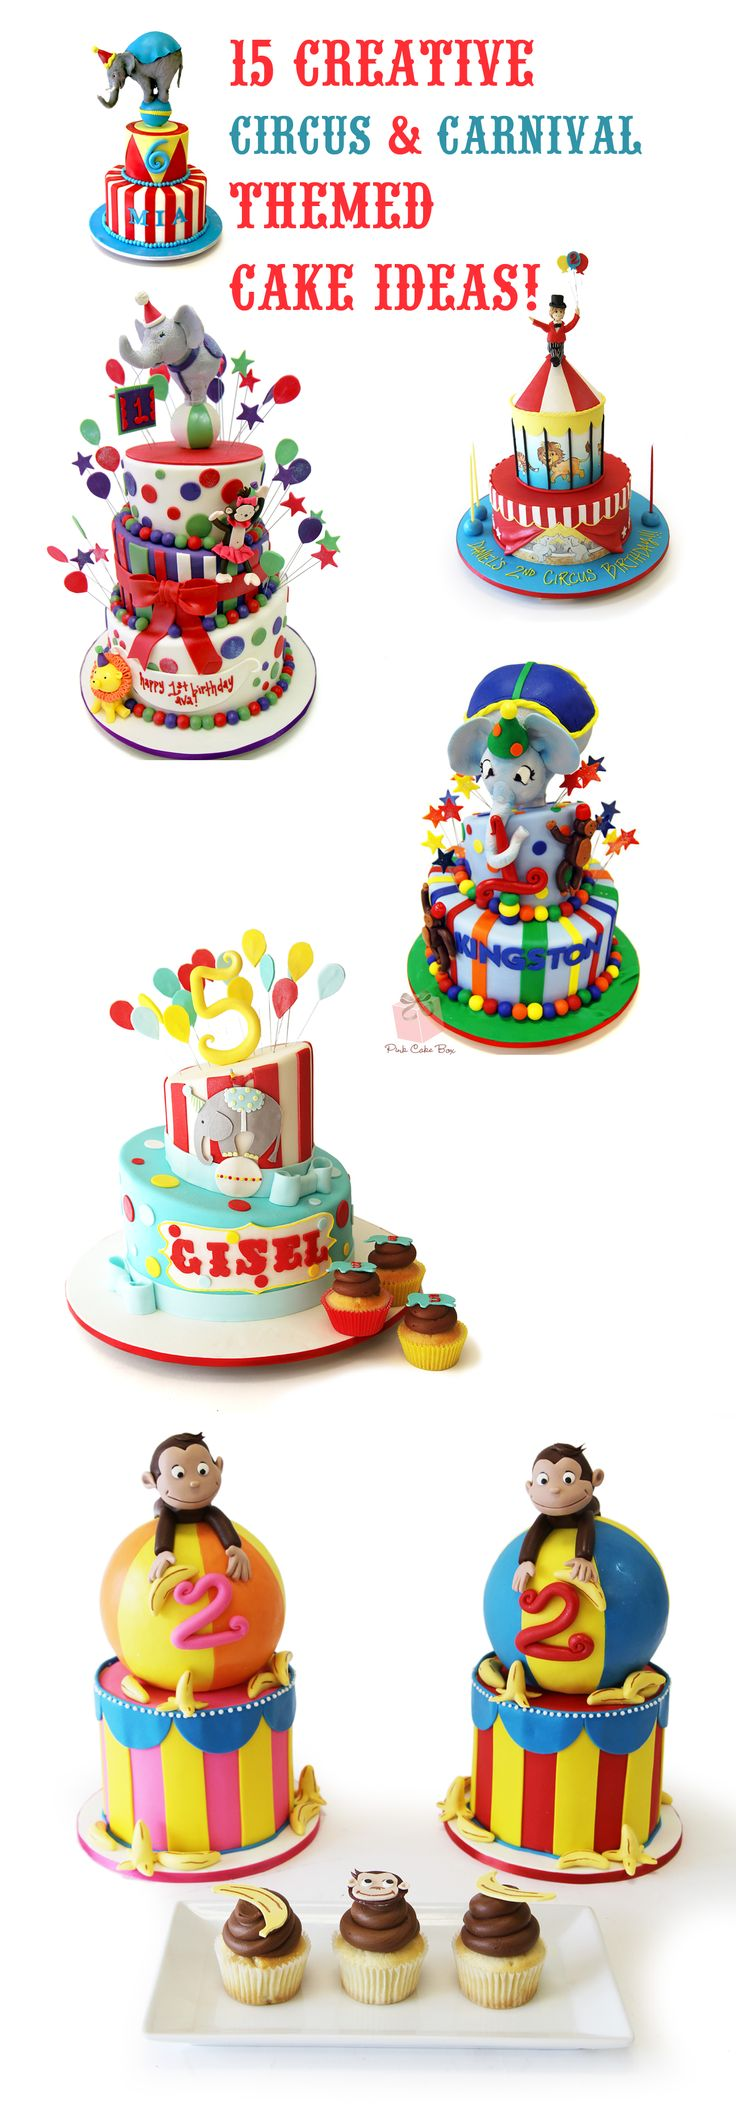 Circus themed cakes can be creative, festive and cute. They make great additions to parties, and children especially love their whimsical characters. Carnival themed cakes are both memorable and eye-catching. Guests can never get enough of their bright hues and fun styles. Just take a look at these creative circus and carnival themed cakes from our talented designers. You'll feel like a kid again!